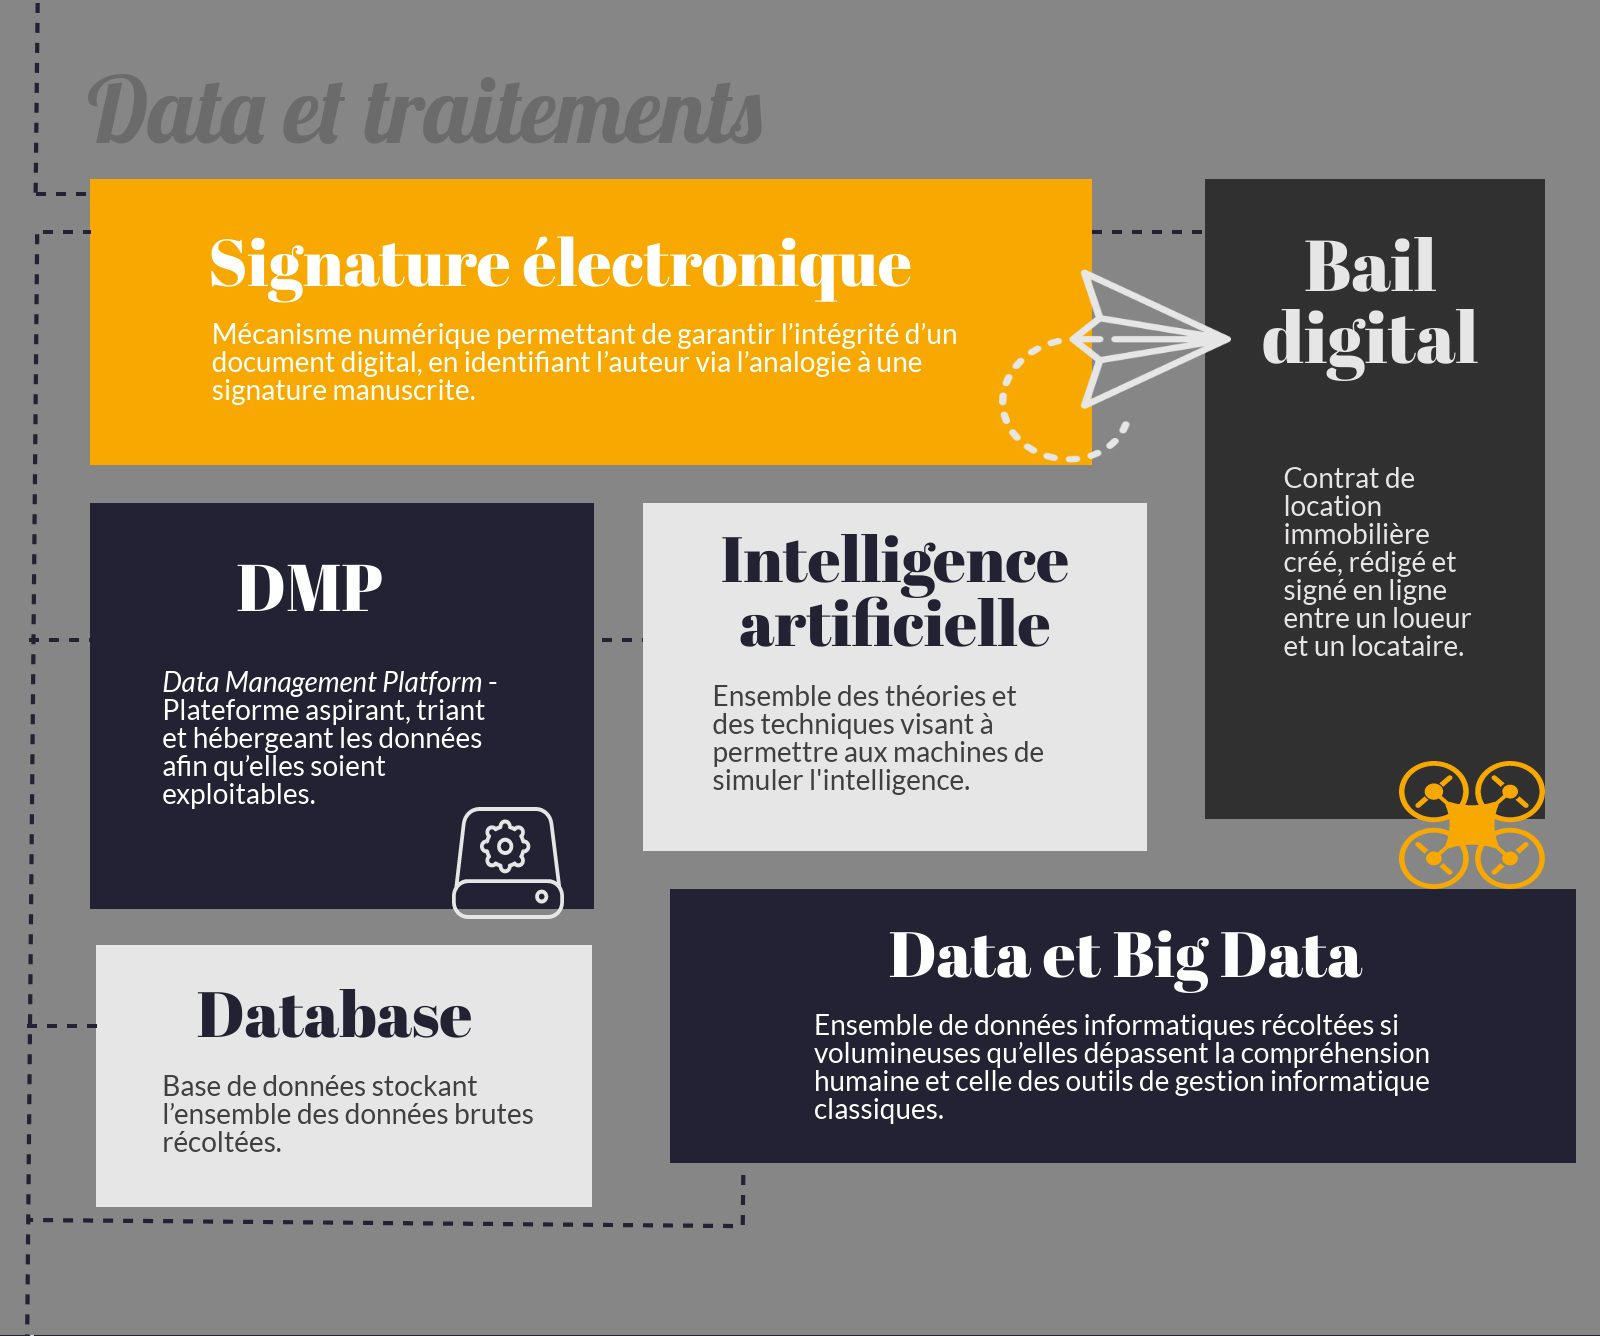 data et traitements